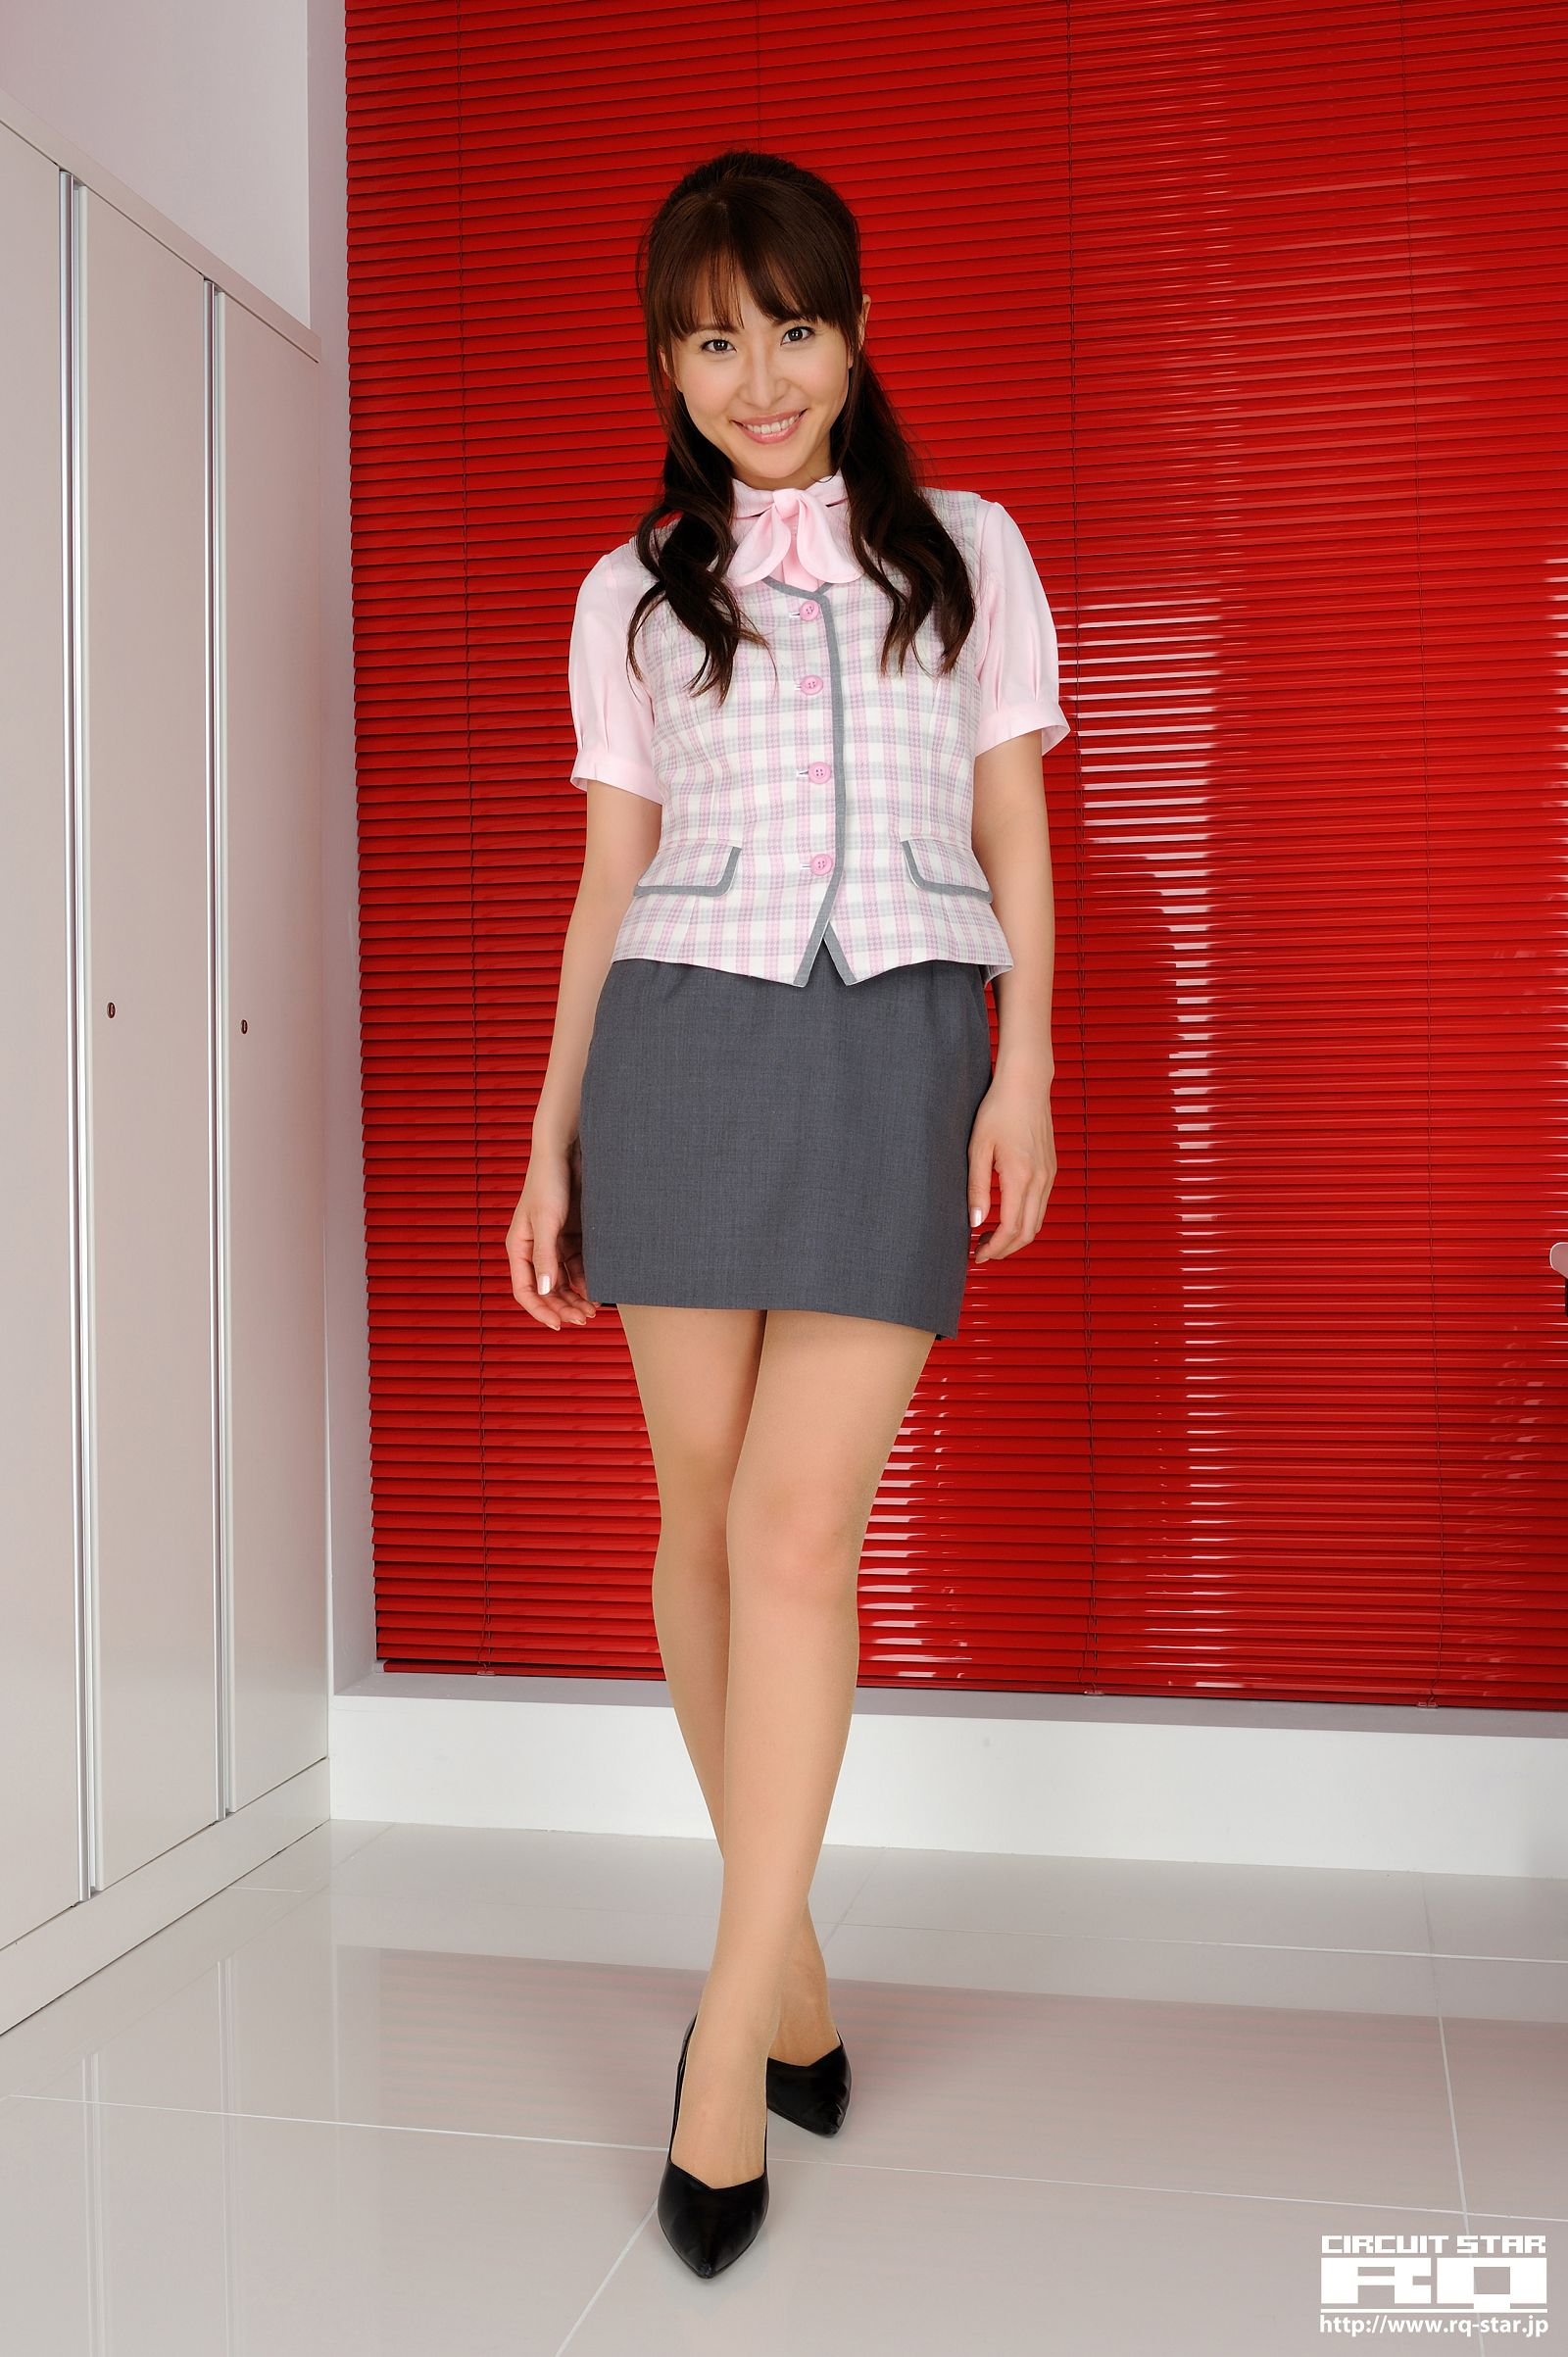 [RQ STAR美女] NO.0327 Rena Sawai 澤井玲菜 Office Lady[170P] RQ STAR 第1张